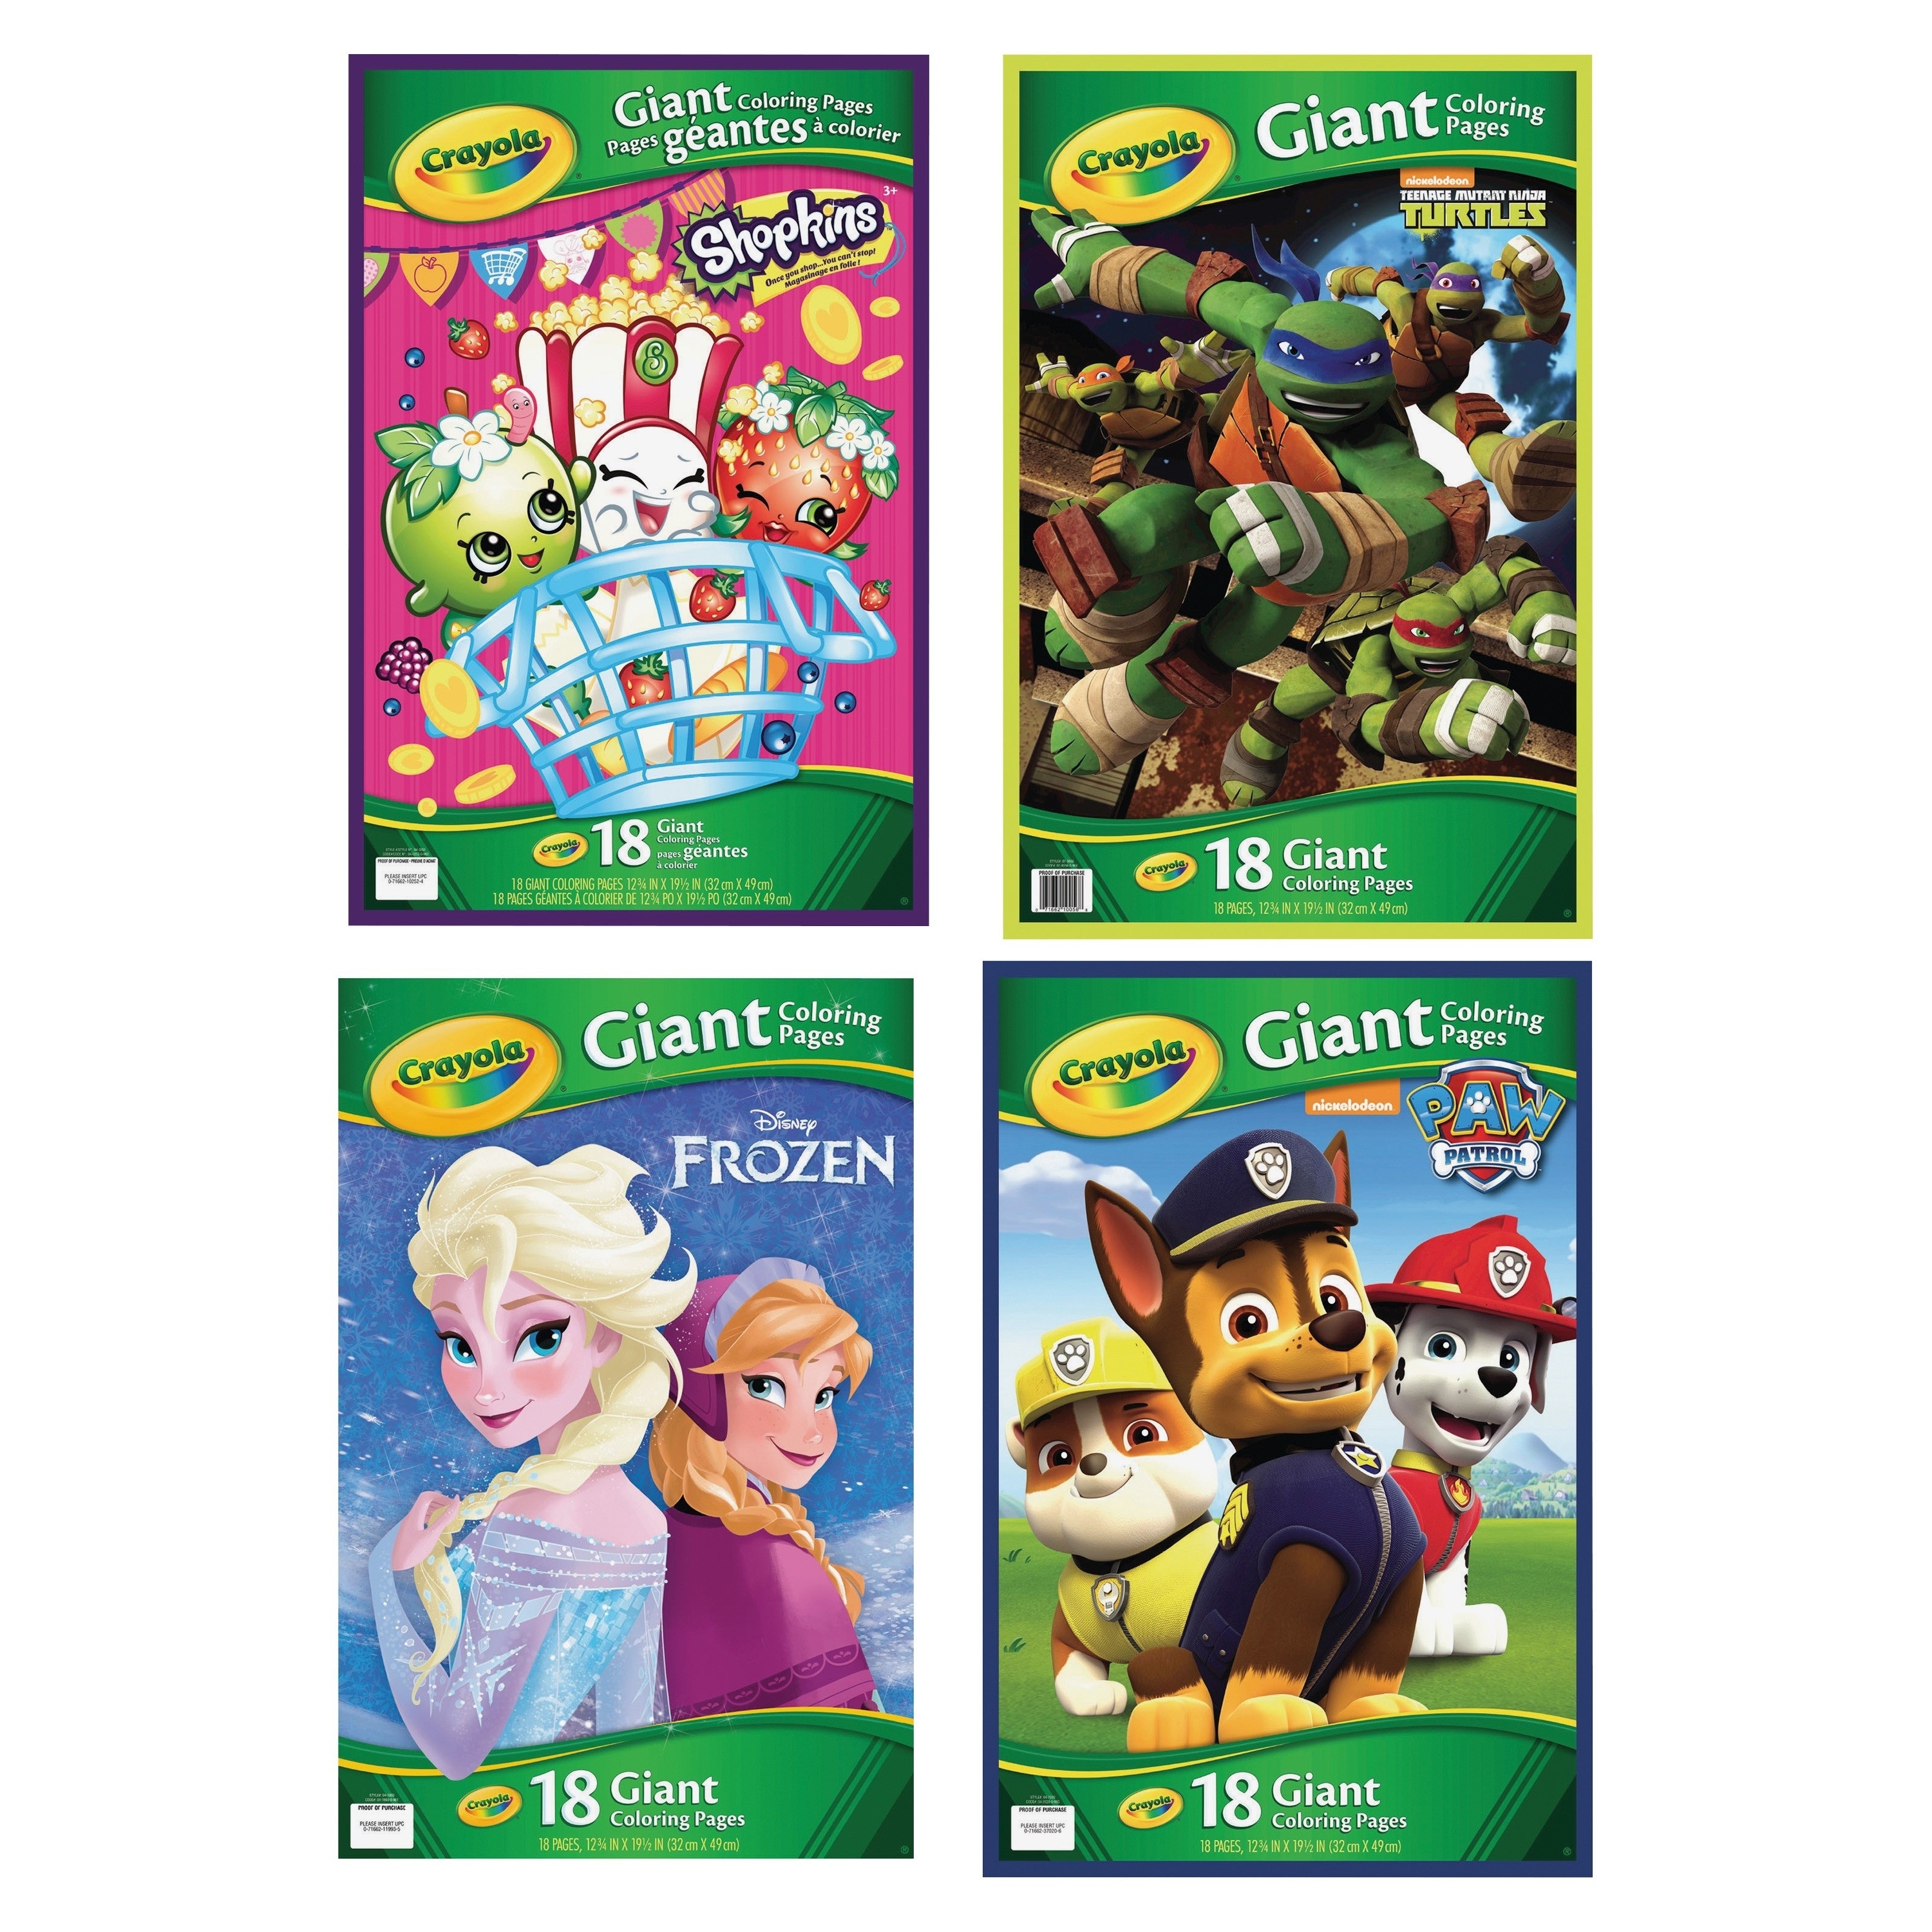 Crayola Giant Coloring Pages Crayola Giant Coloring Pages Assortment Ct Per Carton Ld Products